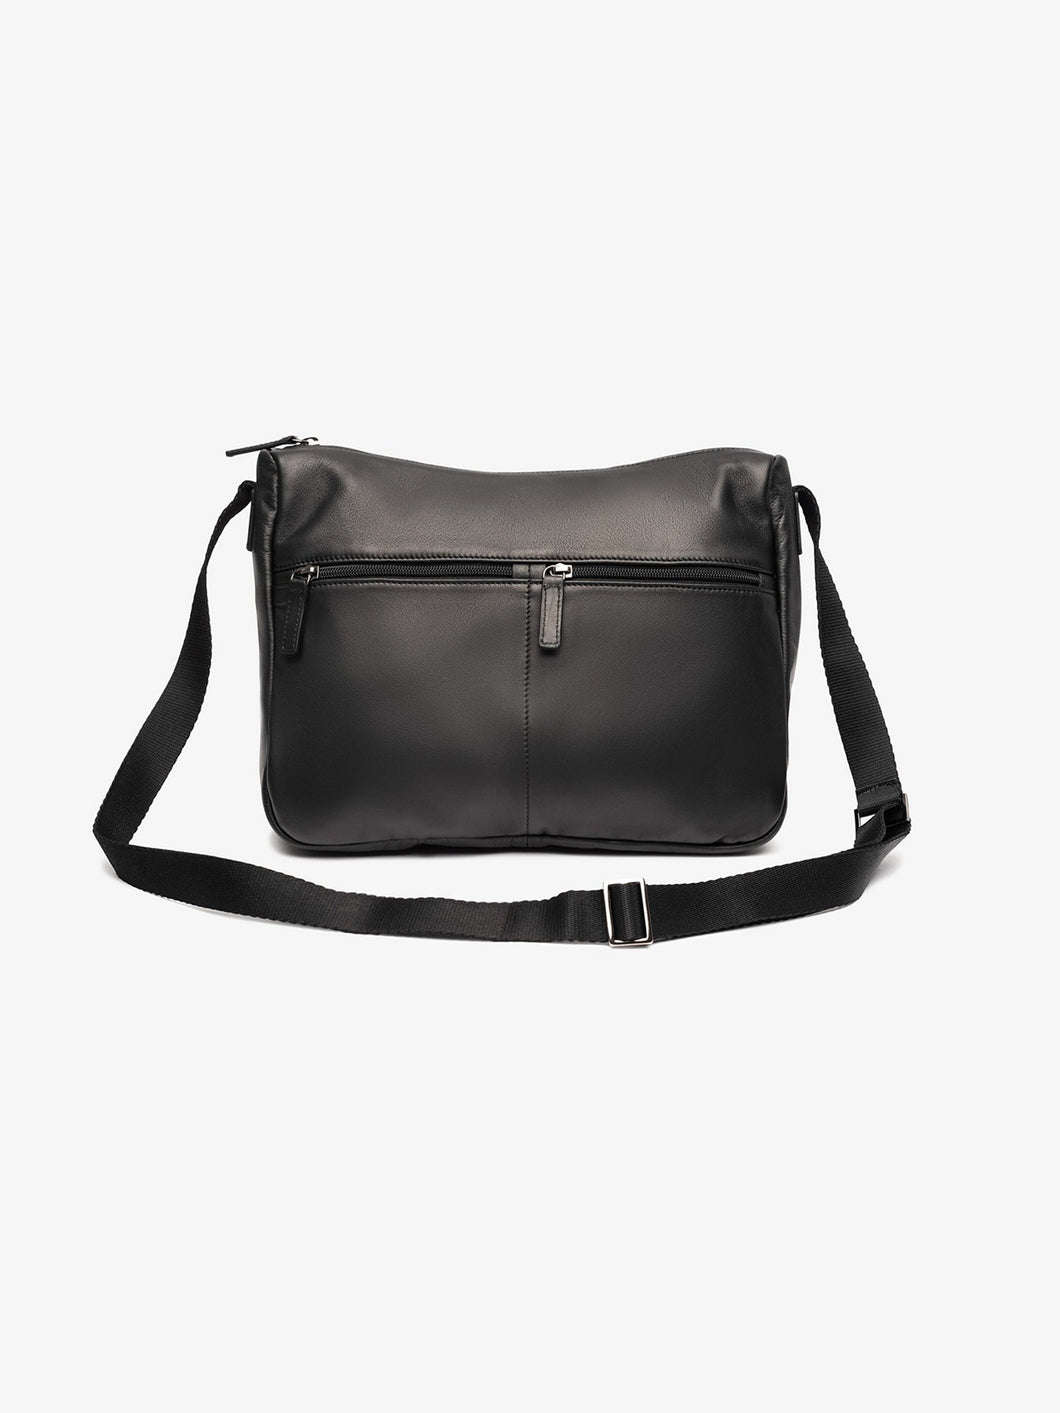 Athens Leather Messenger Bag